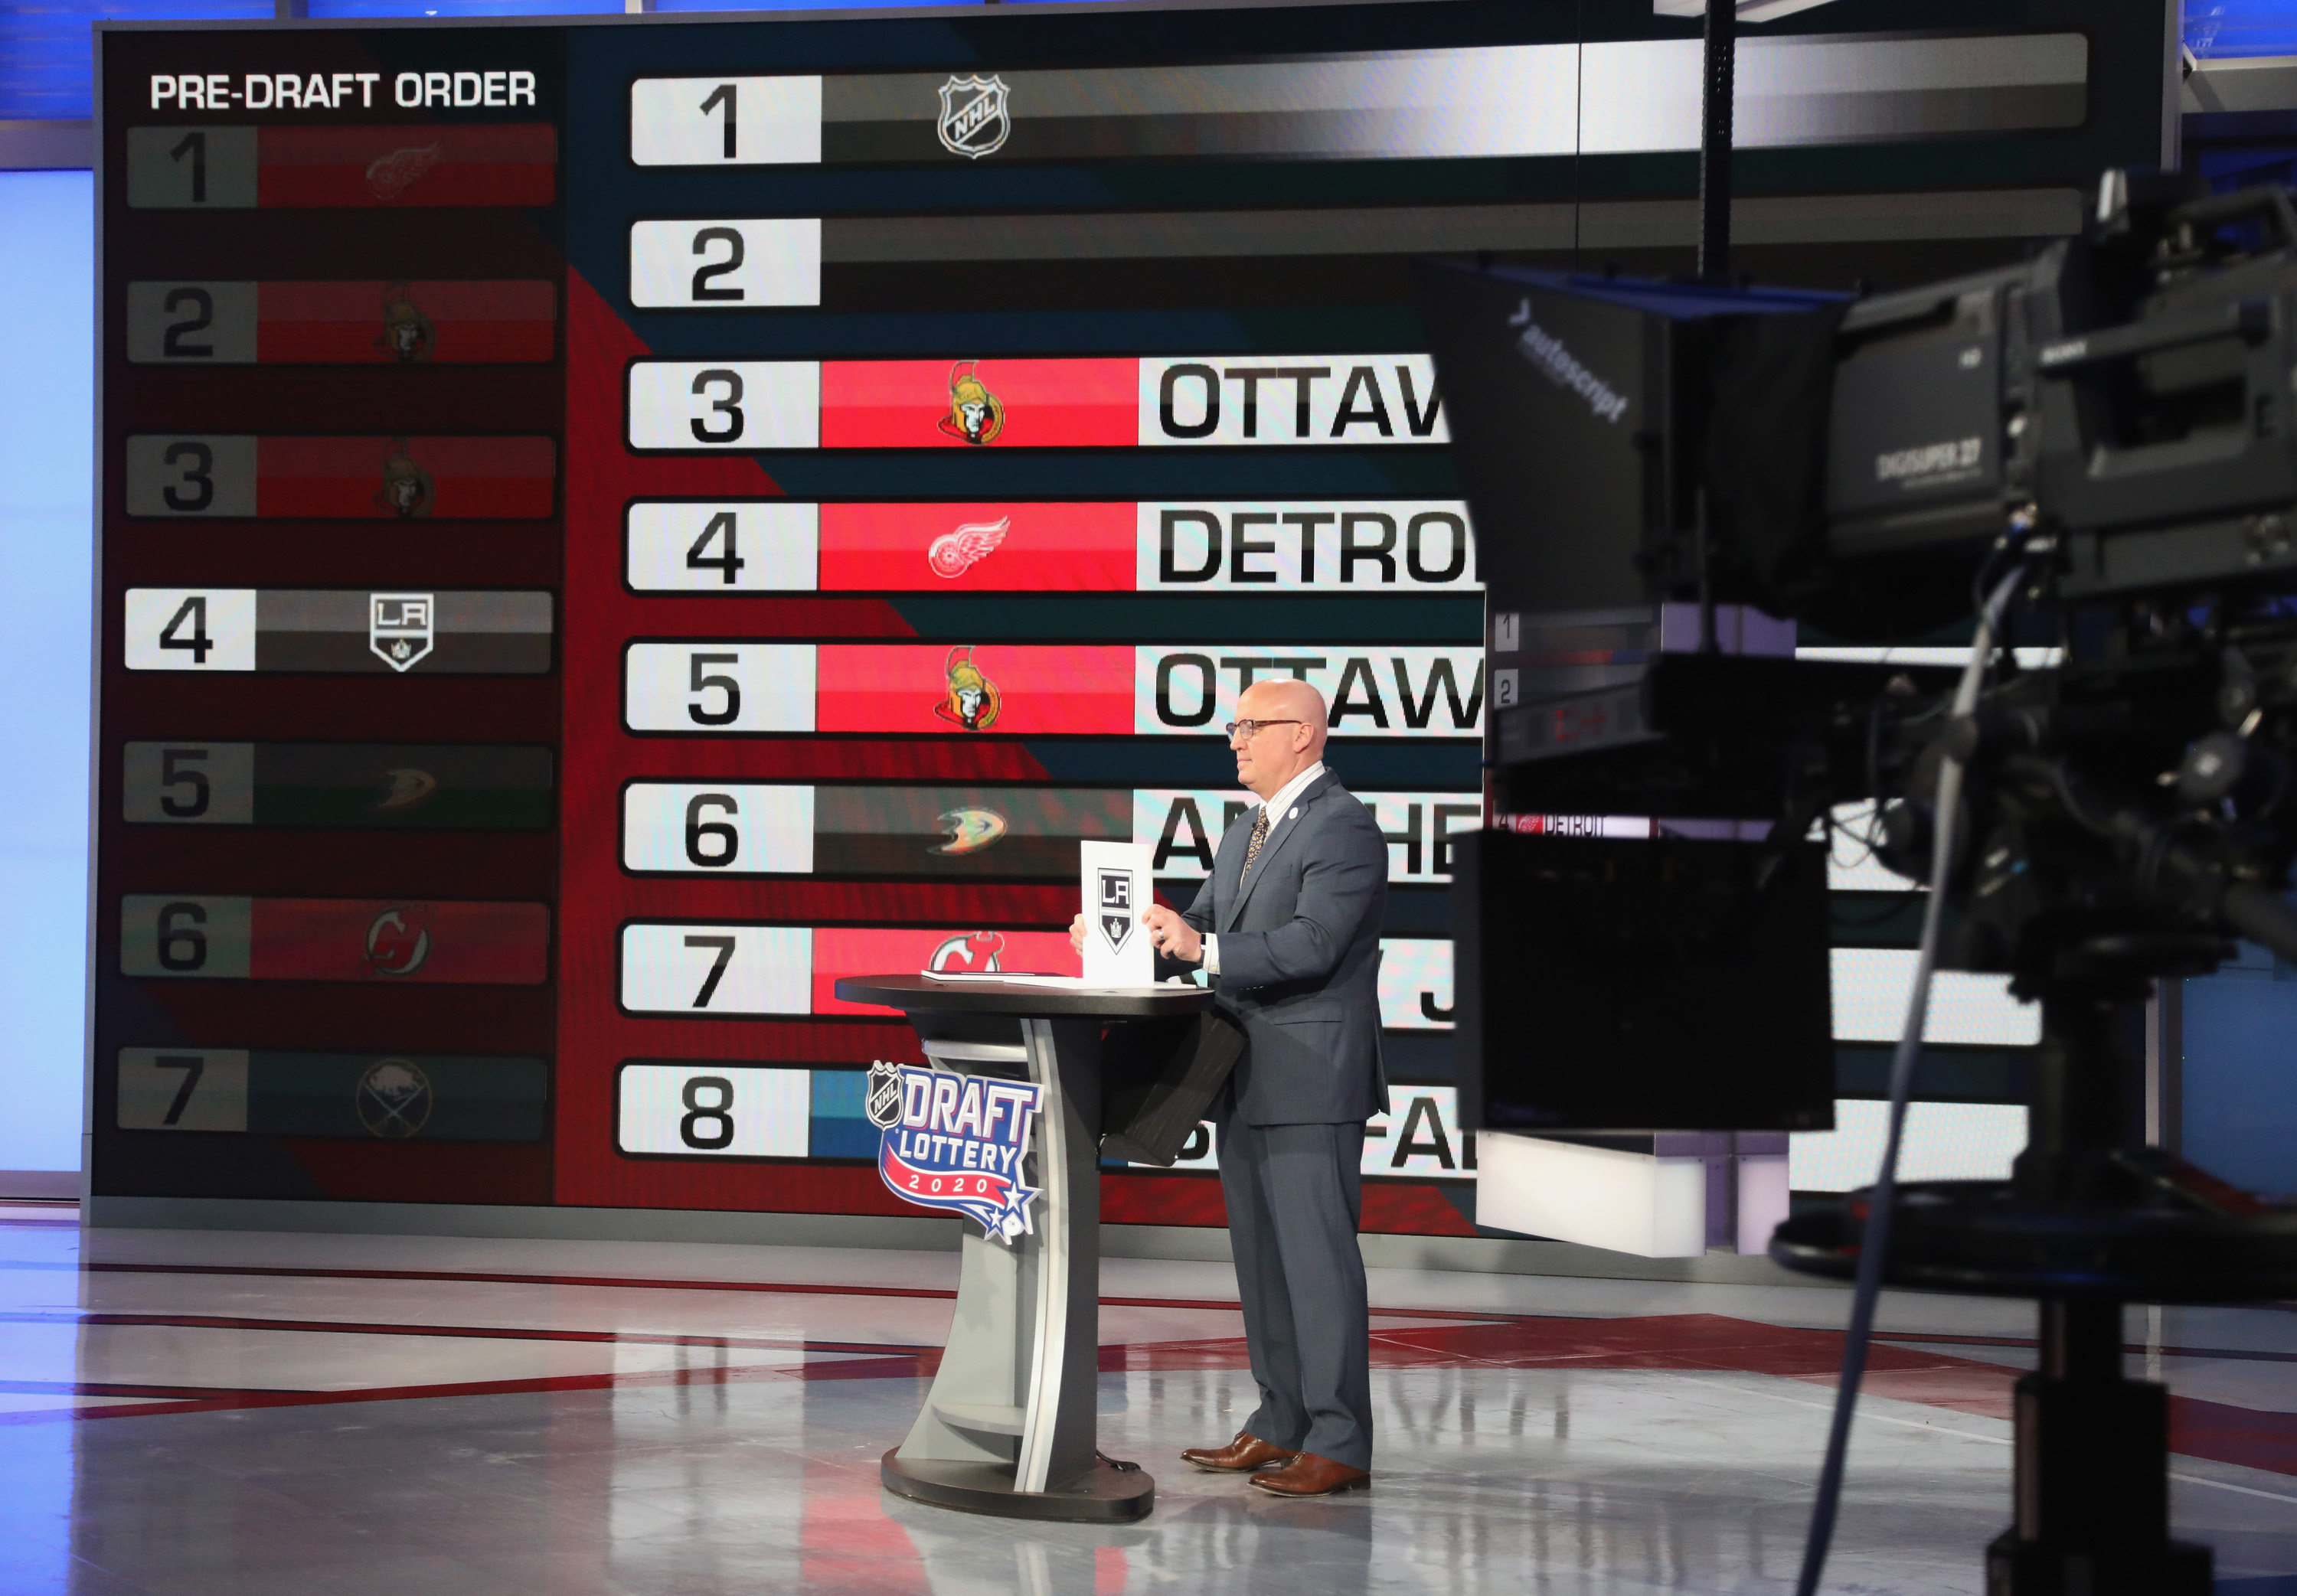 National Hockey league Deputy Commissioner Bill Daly announces the Los Angeles Kings draft position during Phase 1 of the 2020 NHL Draft Lottery on June 26, 2020 at the NHL Network's studio in Secaucus, New Jersey.